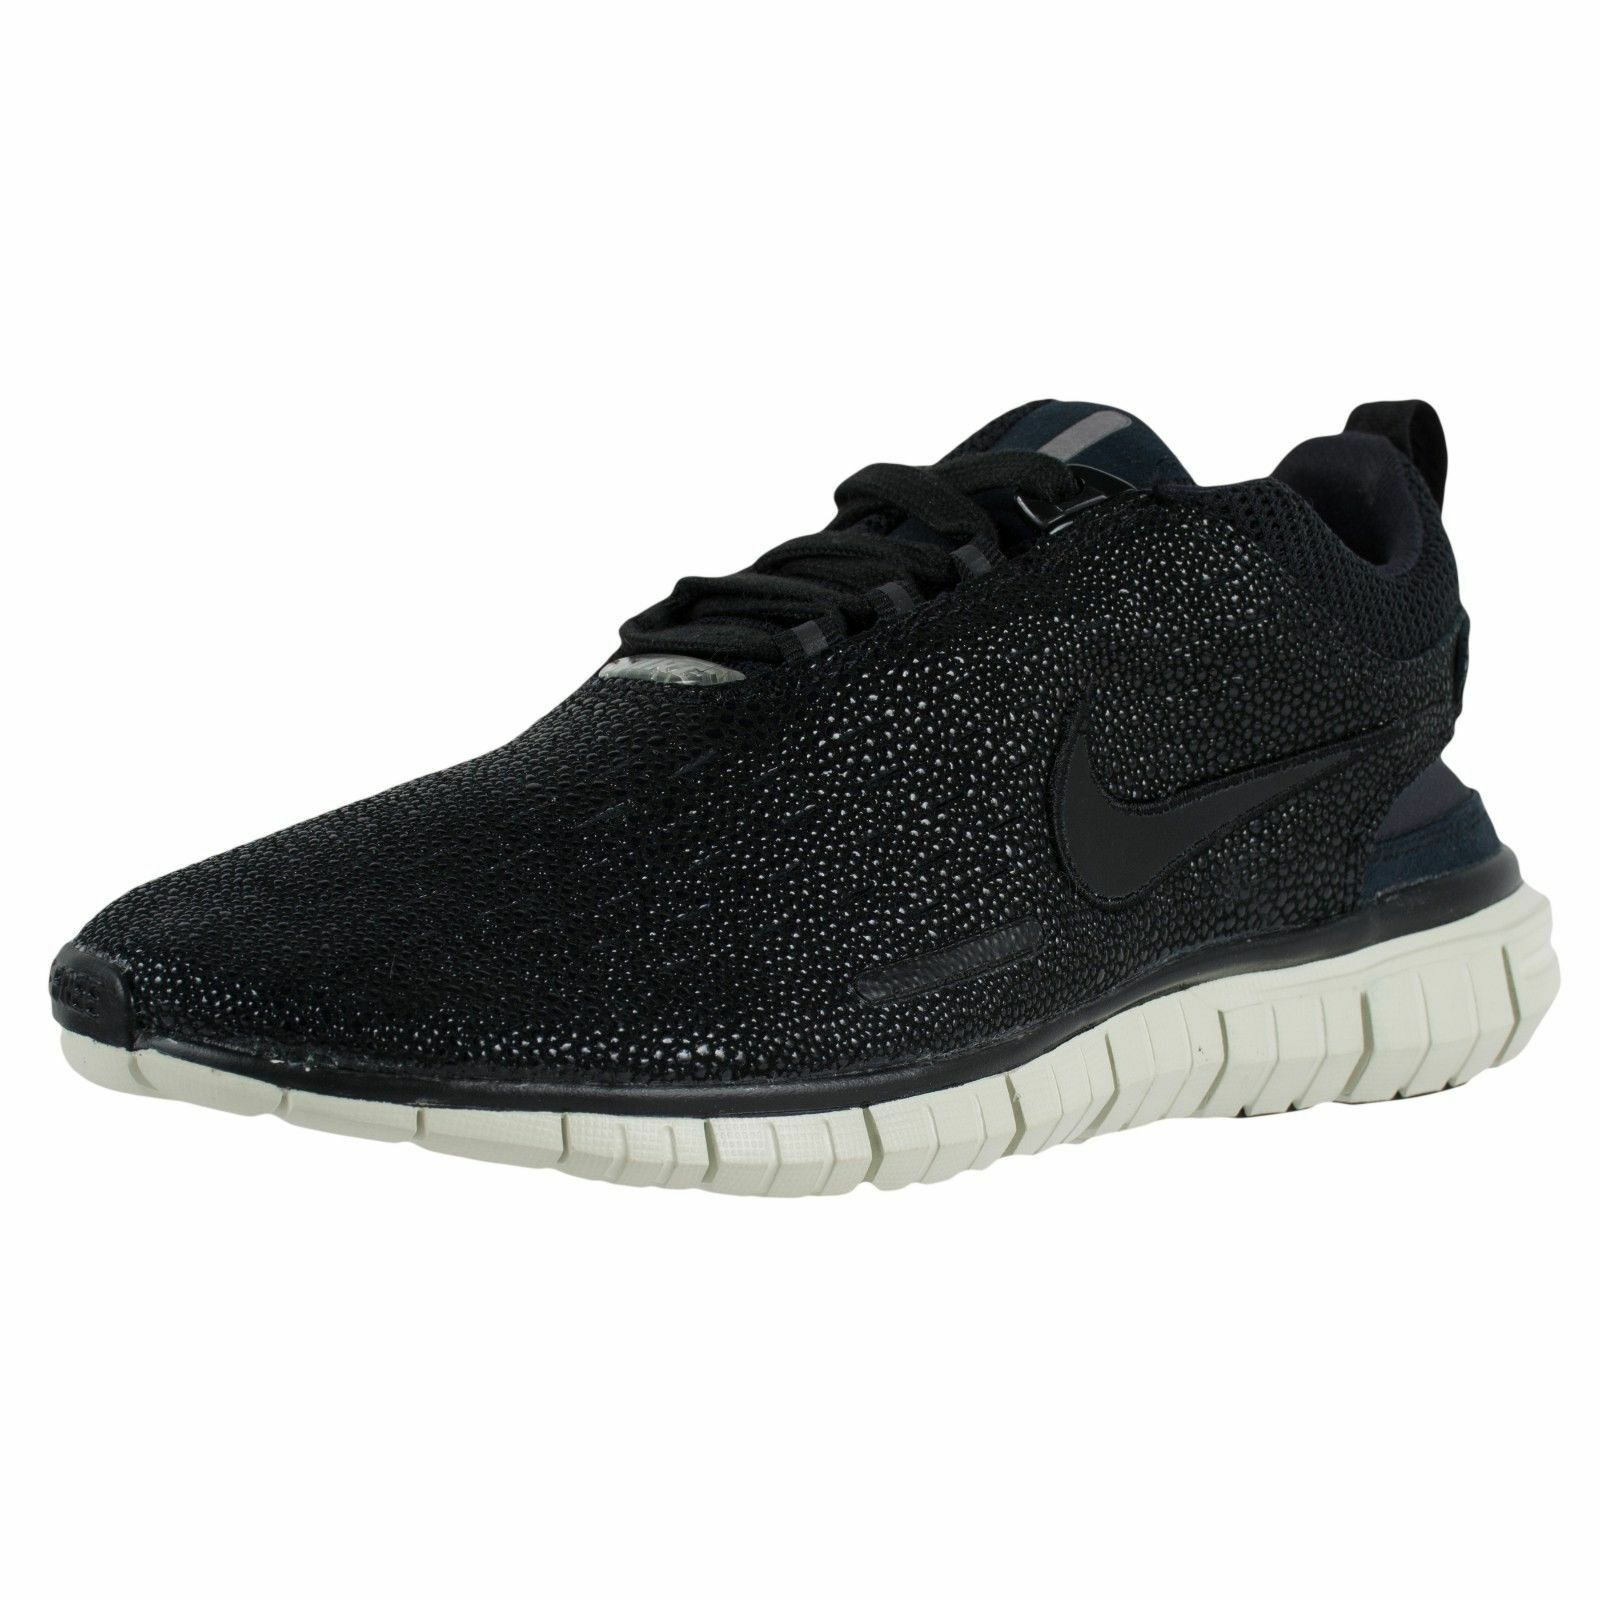 NIKE FREE OG 14 PA SNEAKERS STINGRAY PACK BLACK BLACK SEA GLASS 705006 001